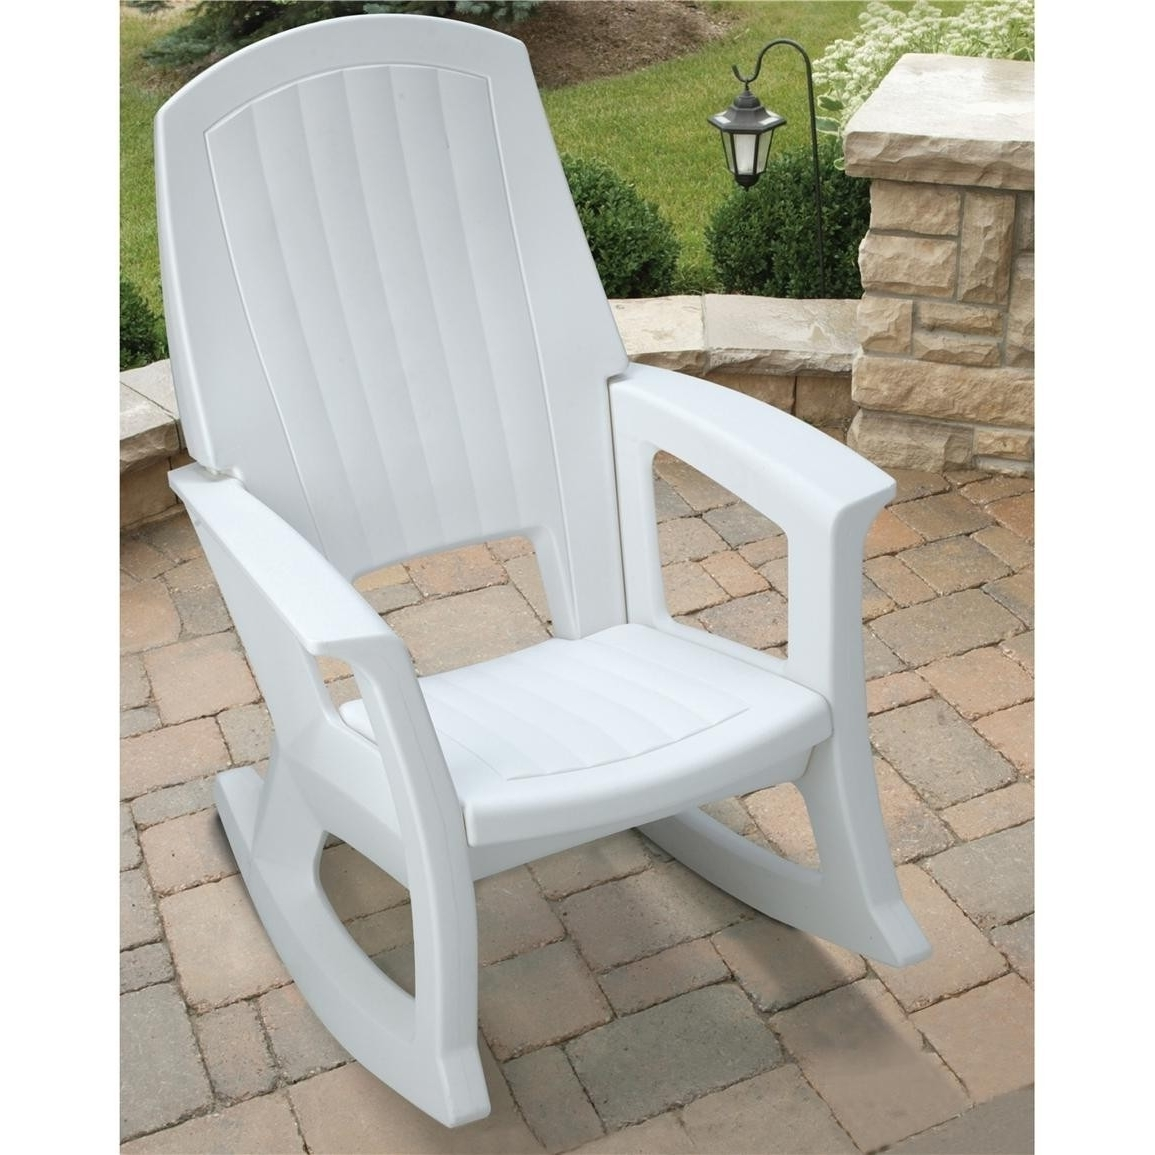 Well Known Semco Plastics White Resin Outdoor Patio Rocking Chair Semw Rural Intended For Resin Patio Rocking Chairs (View 3 of 15)